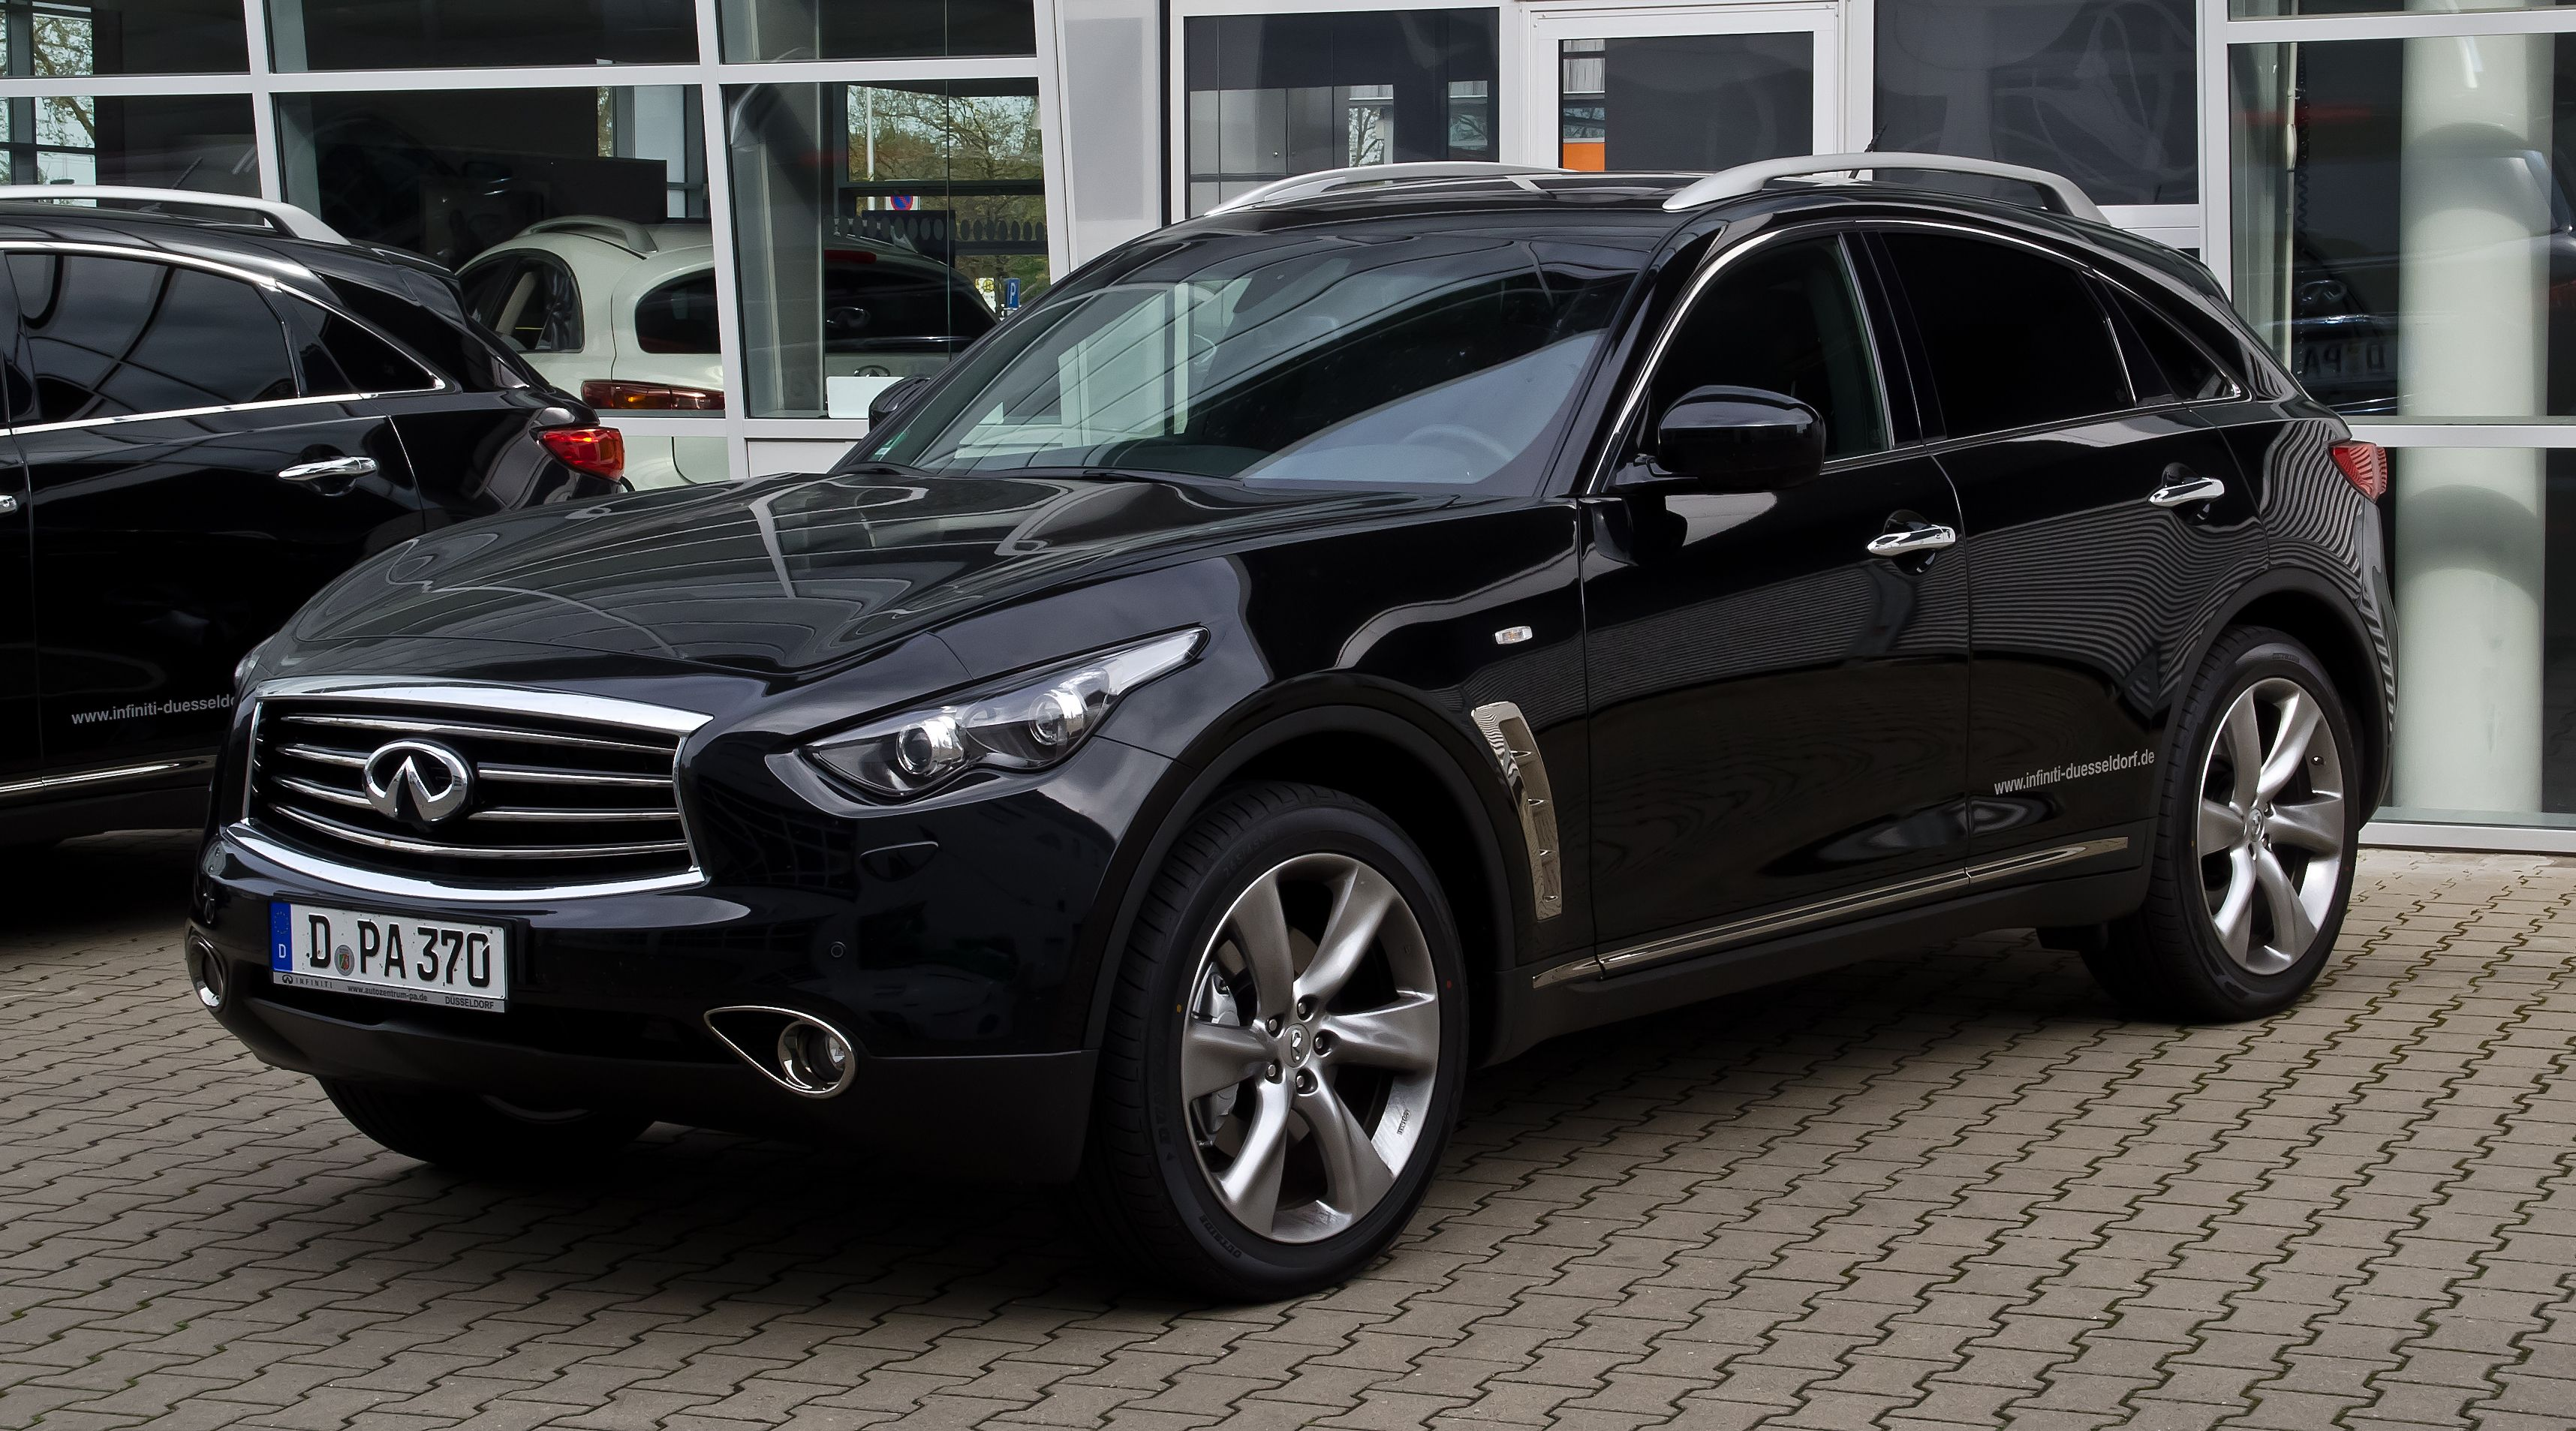 be sale fx to for infinity edition vettel news infiniti auto at shown goodwood